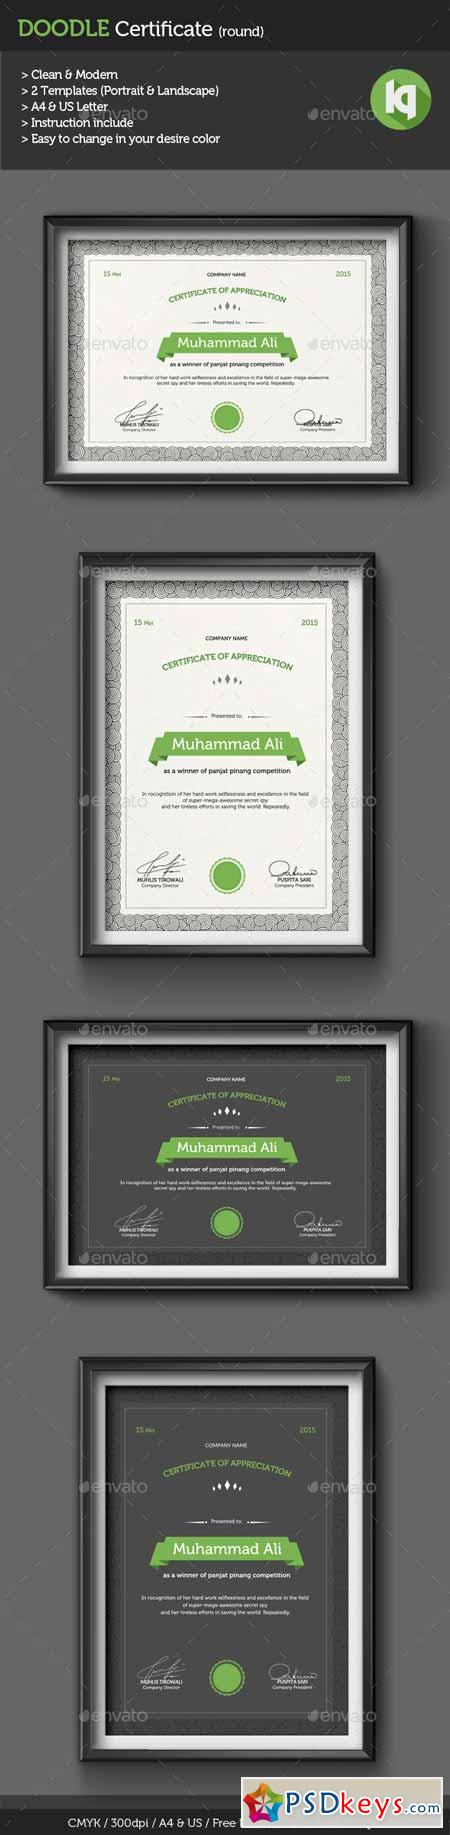 Doodle Certificate Template (round) 10440766